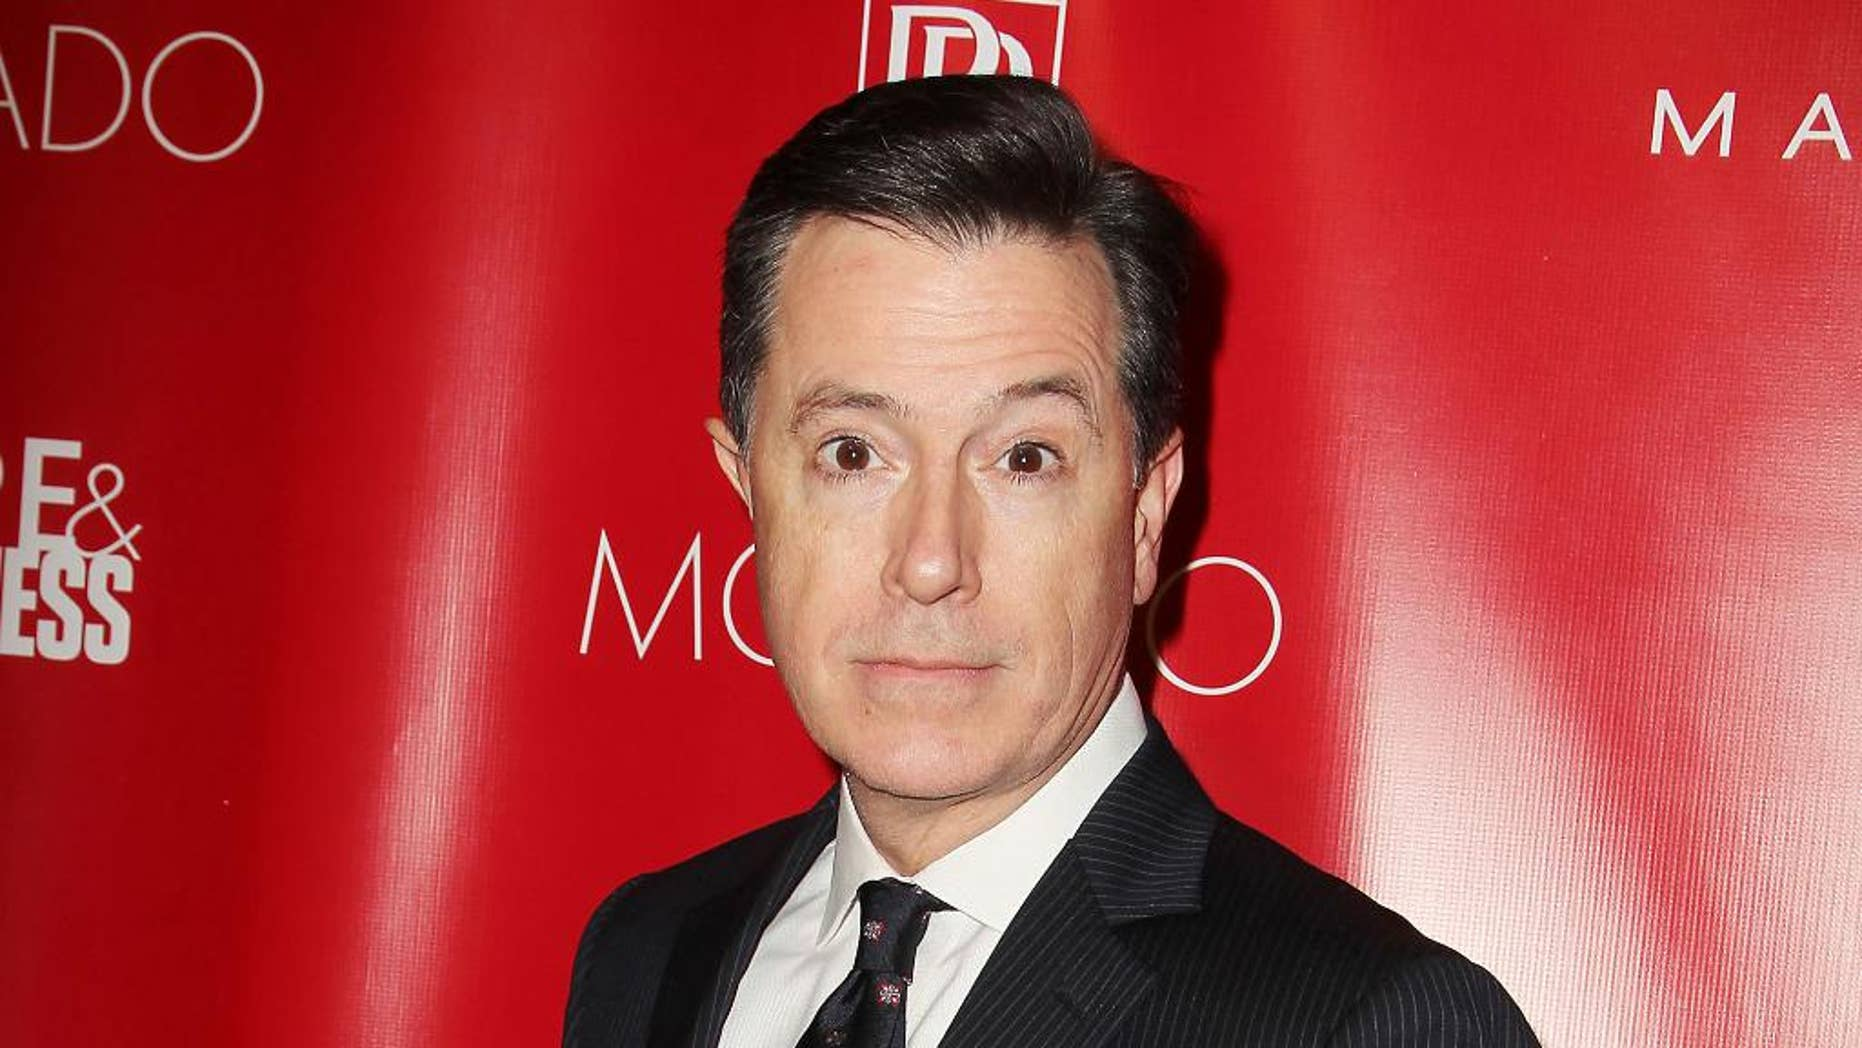 "FILE - This Jan. 31, 2014 file image released by Starpix shows Stephen Colbert at the Shape Magazine and Men's Fitness Super Bowl Party in New York. Colbert will not only be following in David Letterman's footsteps, he'll be doing it on the same stage. CBS said Wednesday, July 23, that Colbert, who is replacing Letterman as the ""Late Show"" host next year, will keep the show in New York City's Ed Sullivan Theatre. Colbert's debut date is still uncertain, dependent on when Letterman officially retires from late-night TV.  (AP Photo/Starpix, Amanda Schwab, File)"